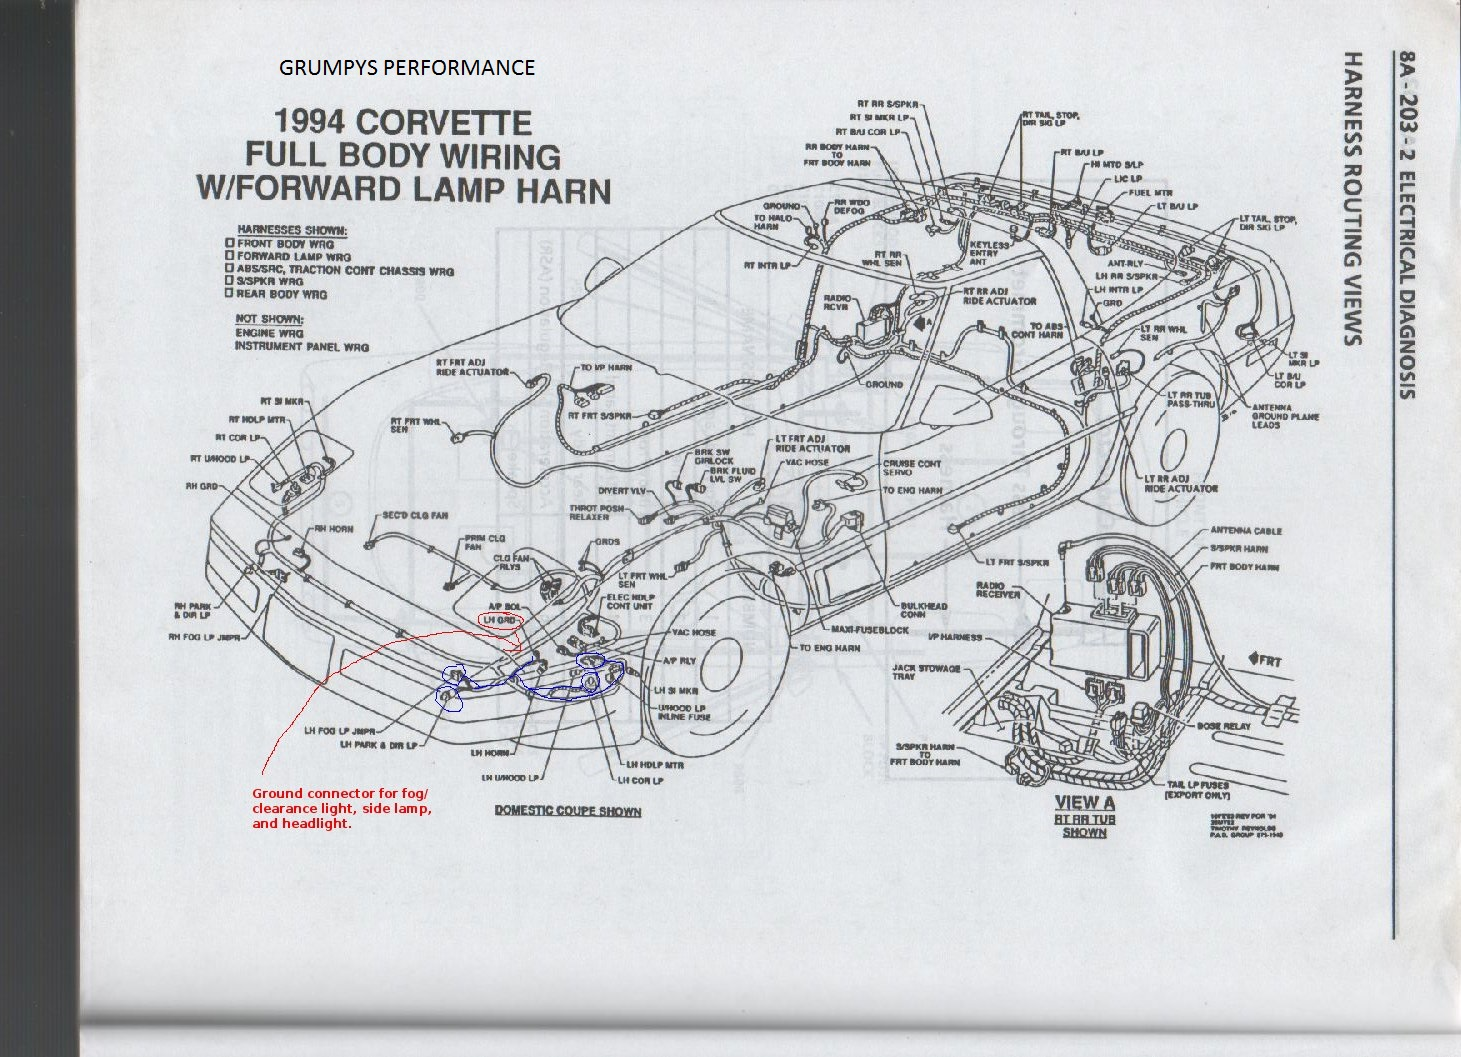 hight resolution of l98 engine diagram wiring diagramwrg 3991 l98 engine wiringl98 engine wiring